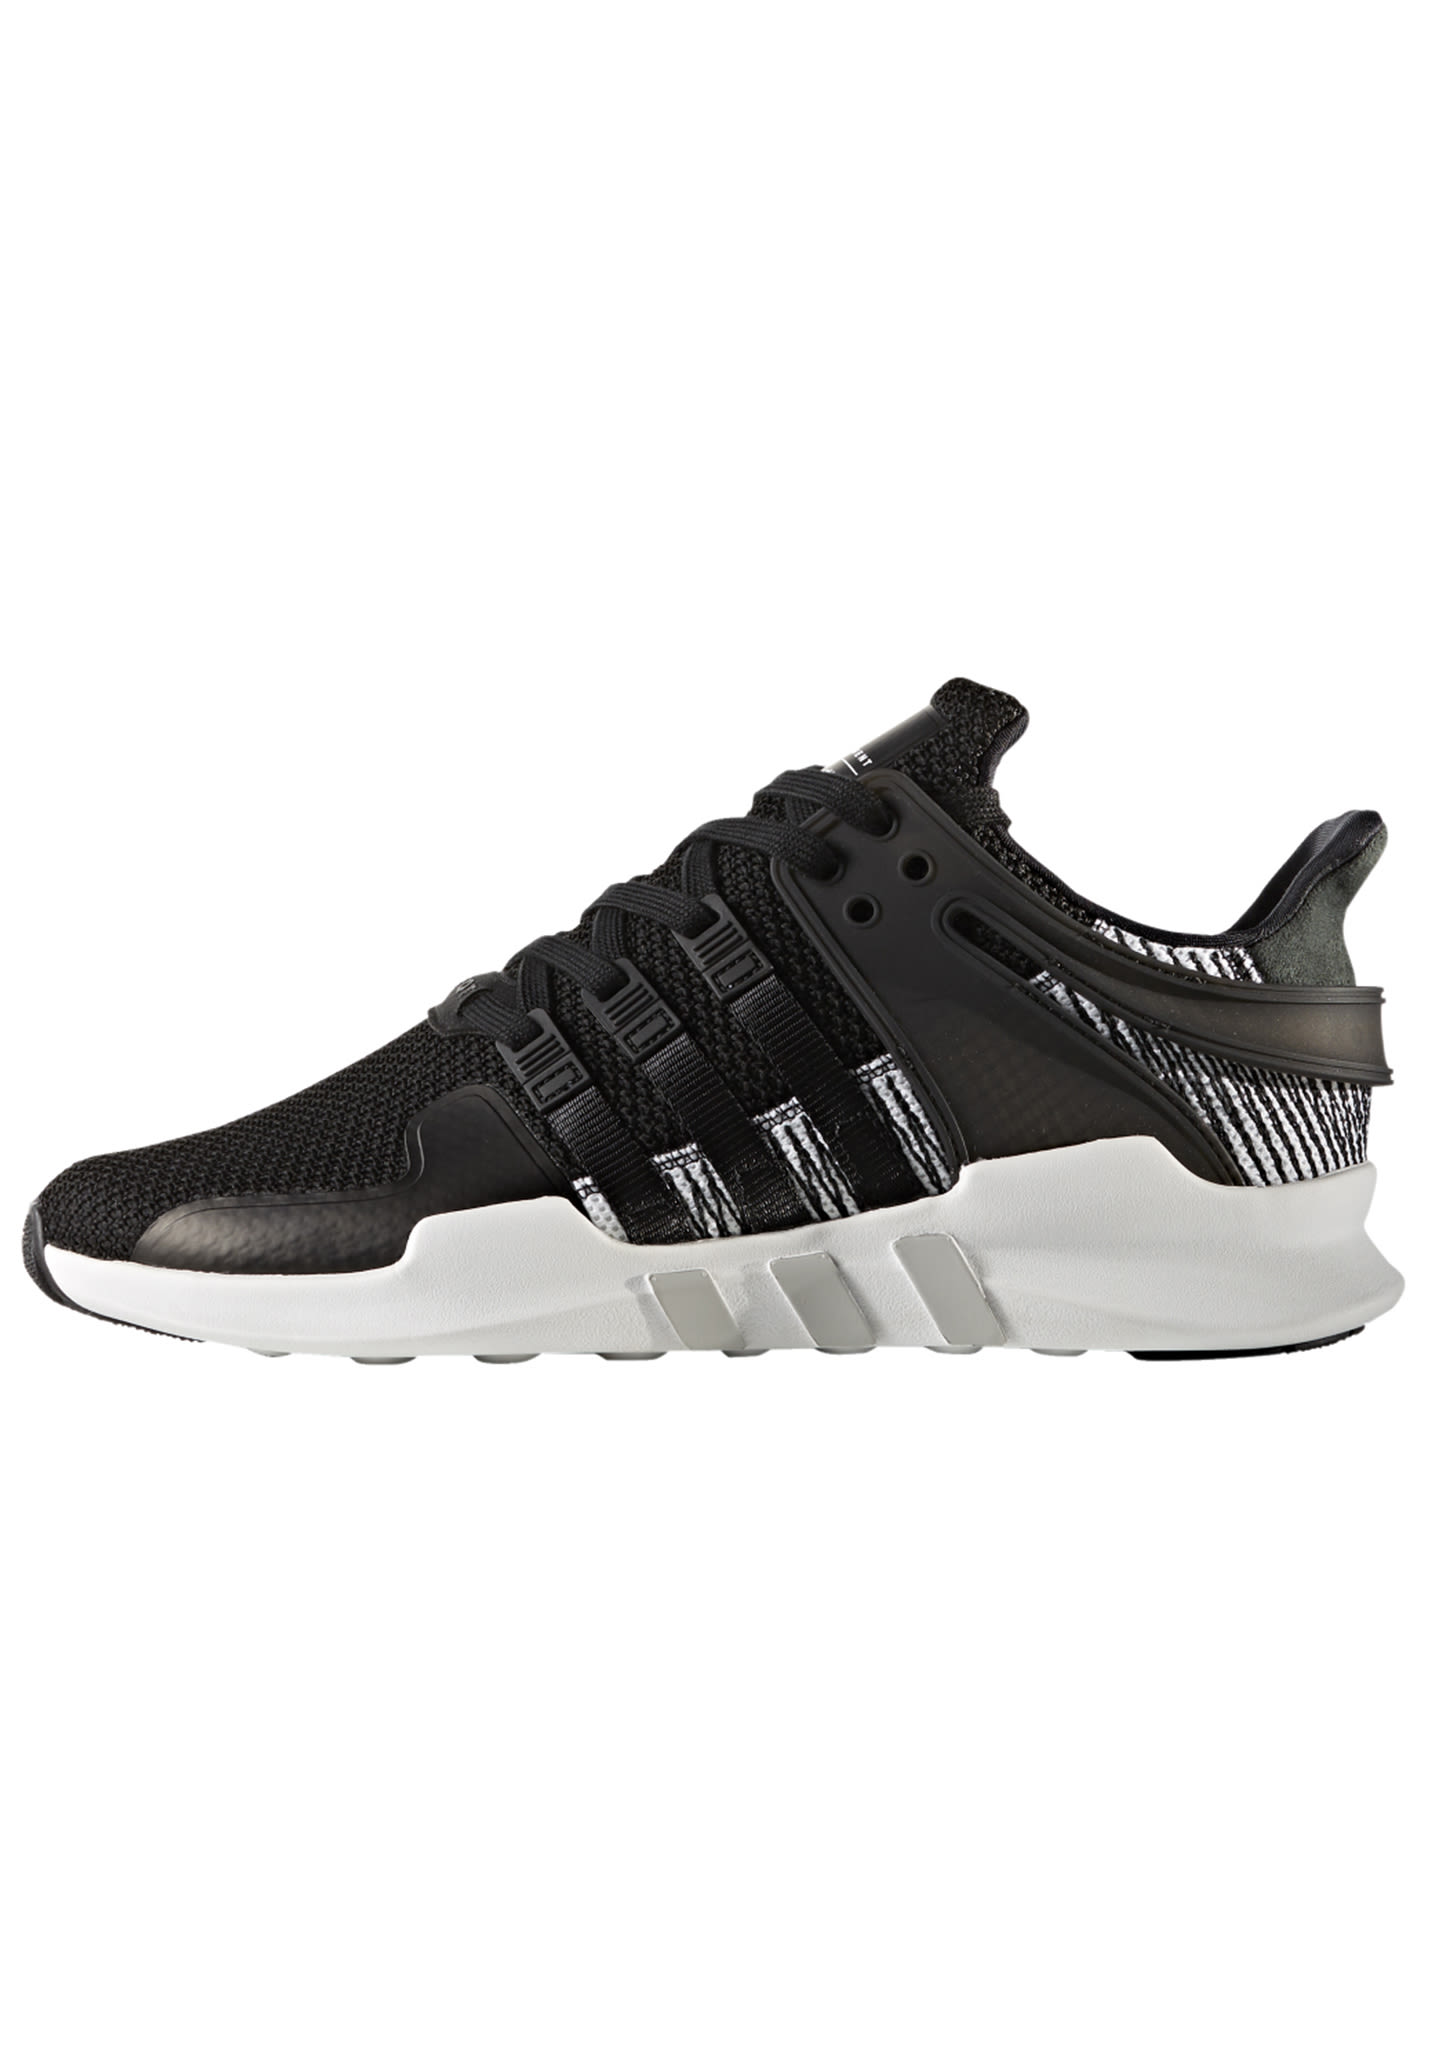 ddf0c66c9d05d ADIDAS ORIGINALS EQT Support ADV - Sneakers for Men - Black - Planet Sports